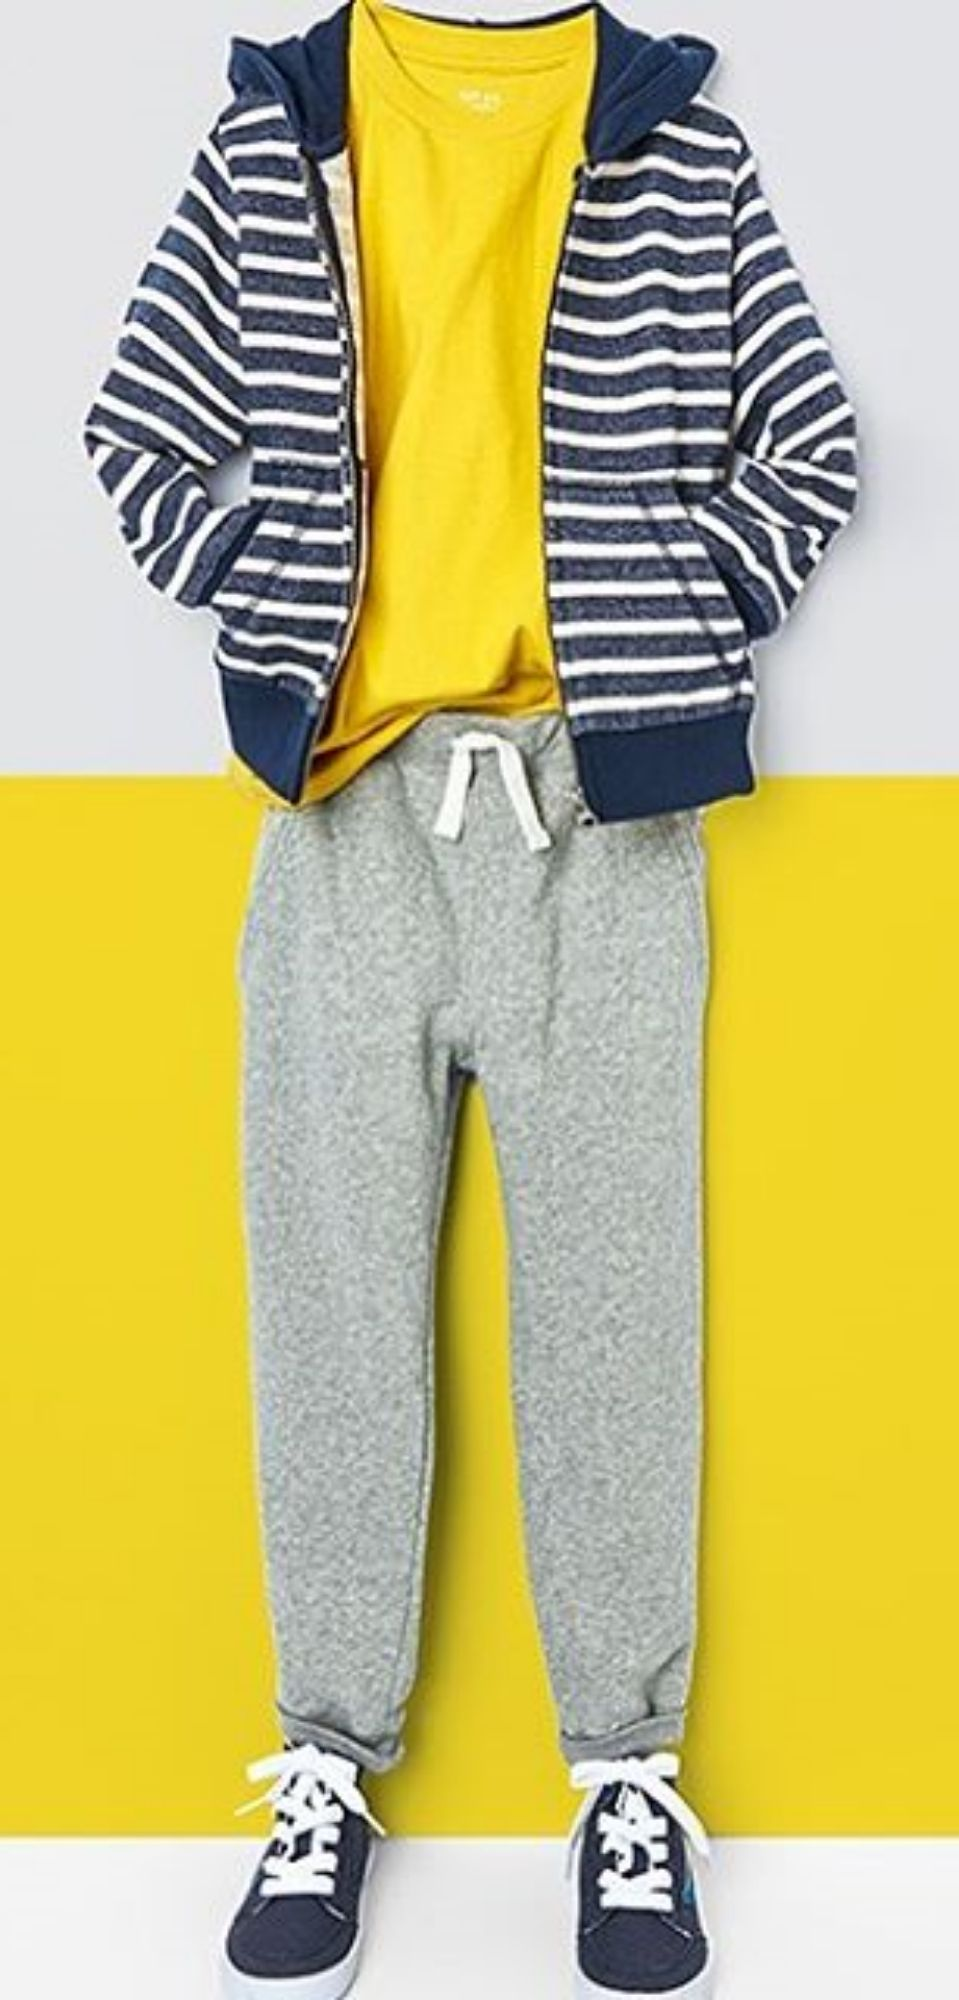 34a2edc9f Casual. Comfy. Cool. | Boys' fashion | Activewear | Street style | Kids'  fashion | The Children's Place